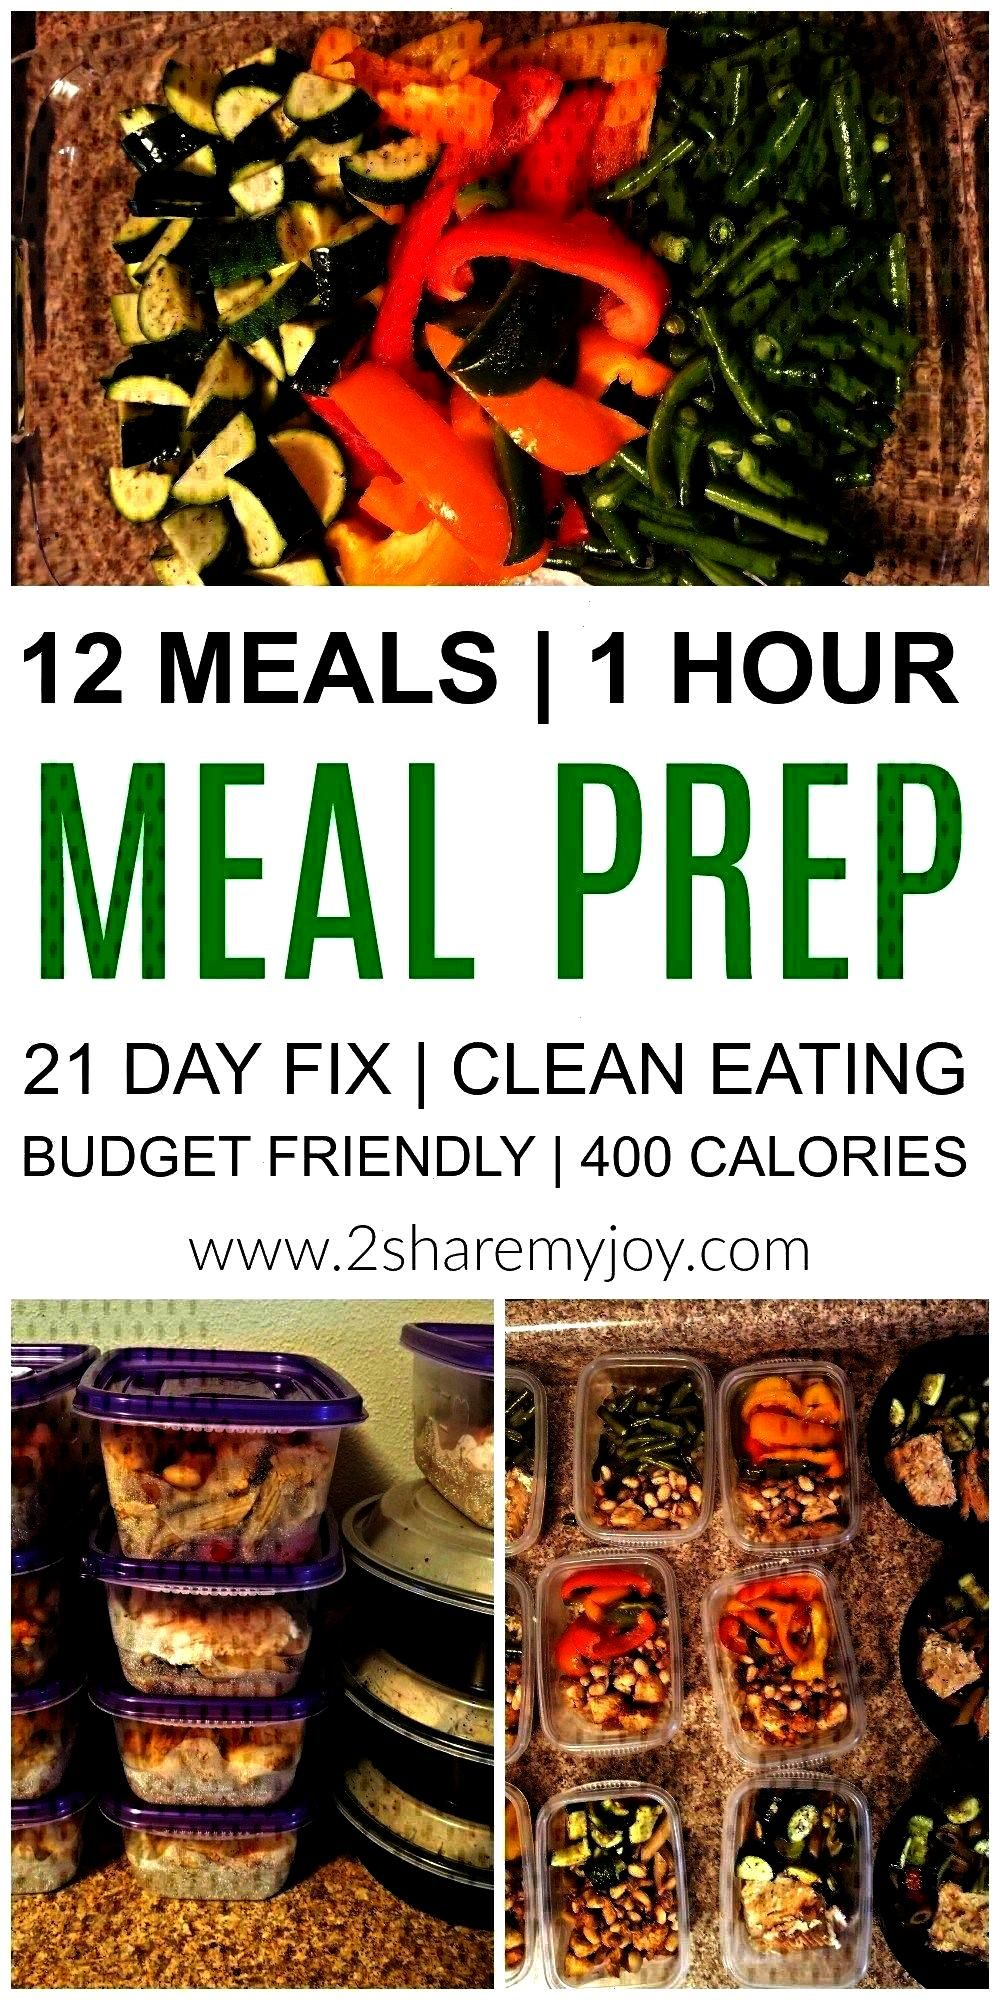 Healthy Lunches in 1 Hour -  Meal Prep: 12 healthy lunches in 1 hour. Make these healthy clean eati